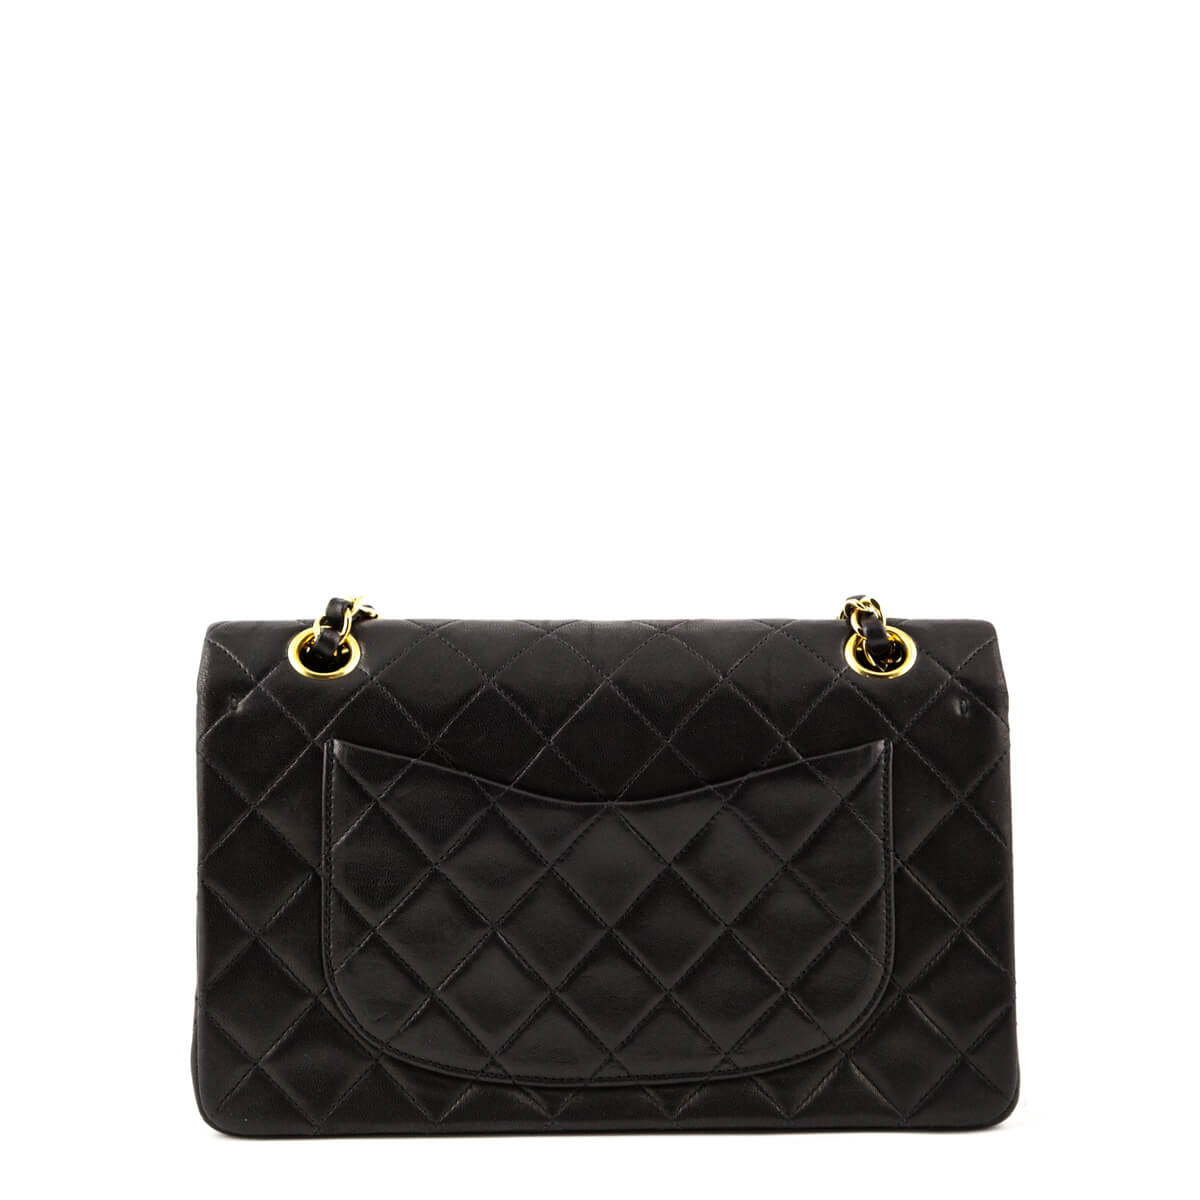 9e4072f8dda8 ... Chanel Black Lambskin Vintage Small Double Flap Bag GHW - LOVE that BAG  - Preowned Authentic ...